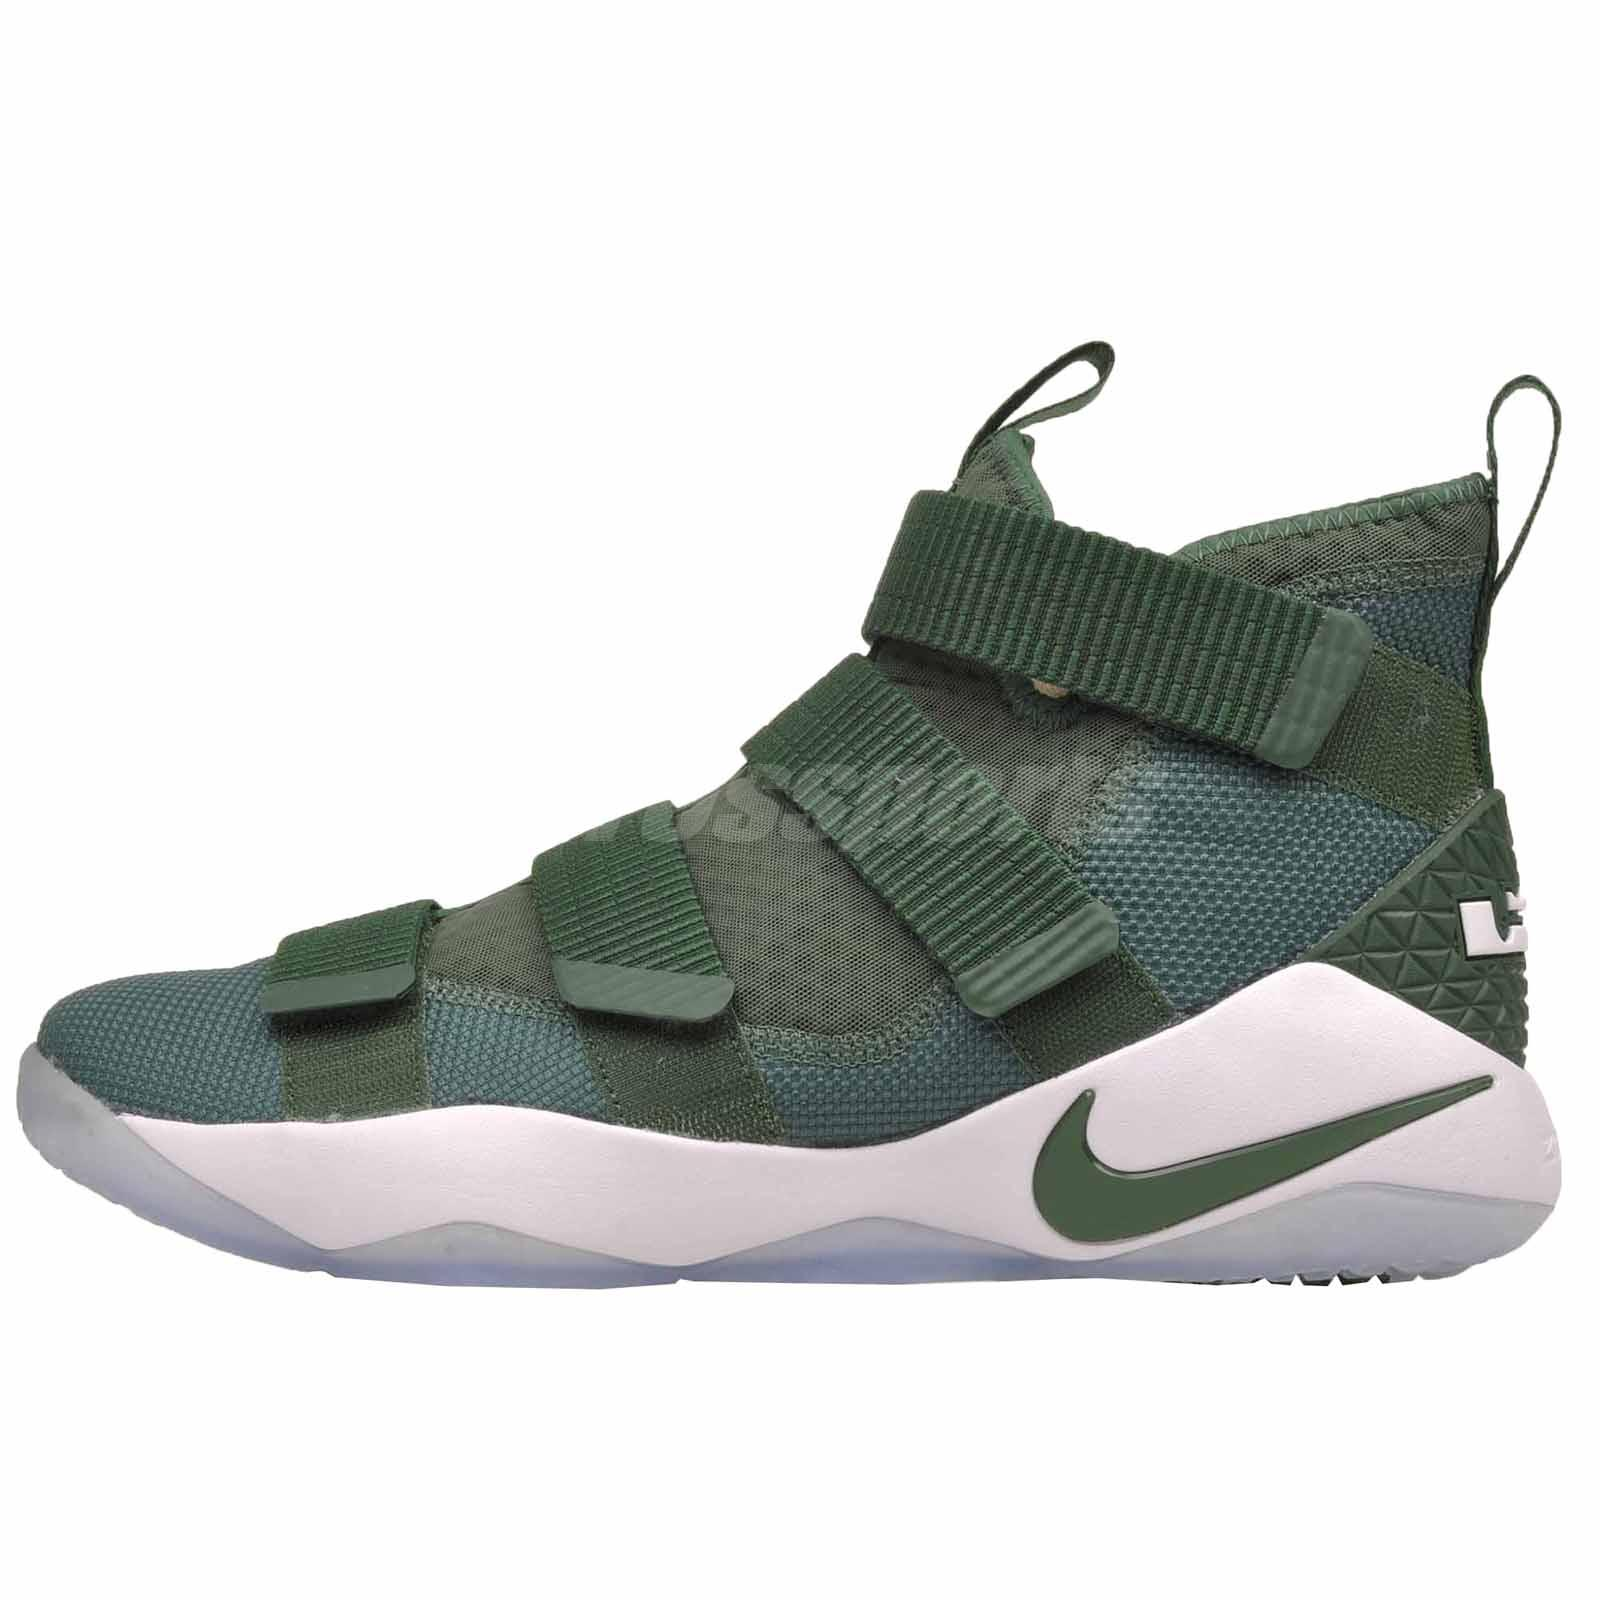 b7c0c7c855f Details about Nike LeBron Soldier XI TB Basketball Mens Shoes Fir Green  White 943155-302